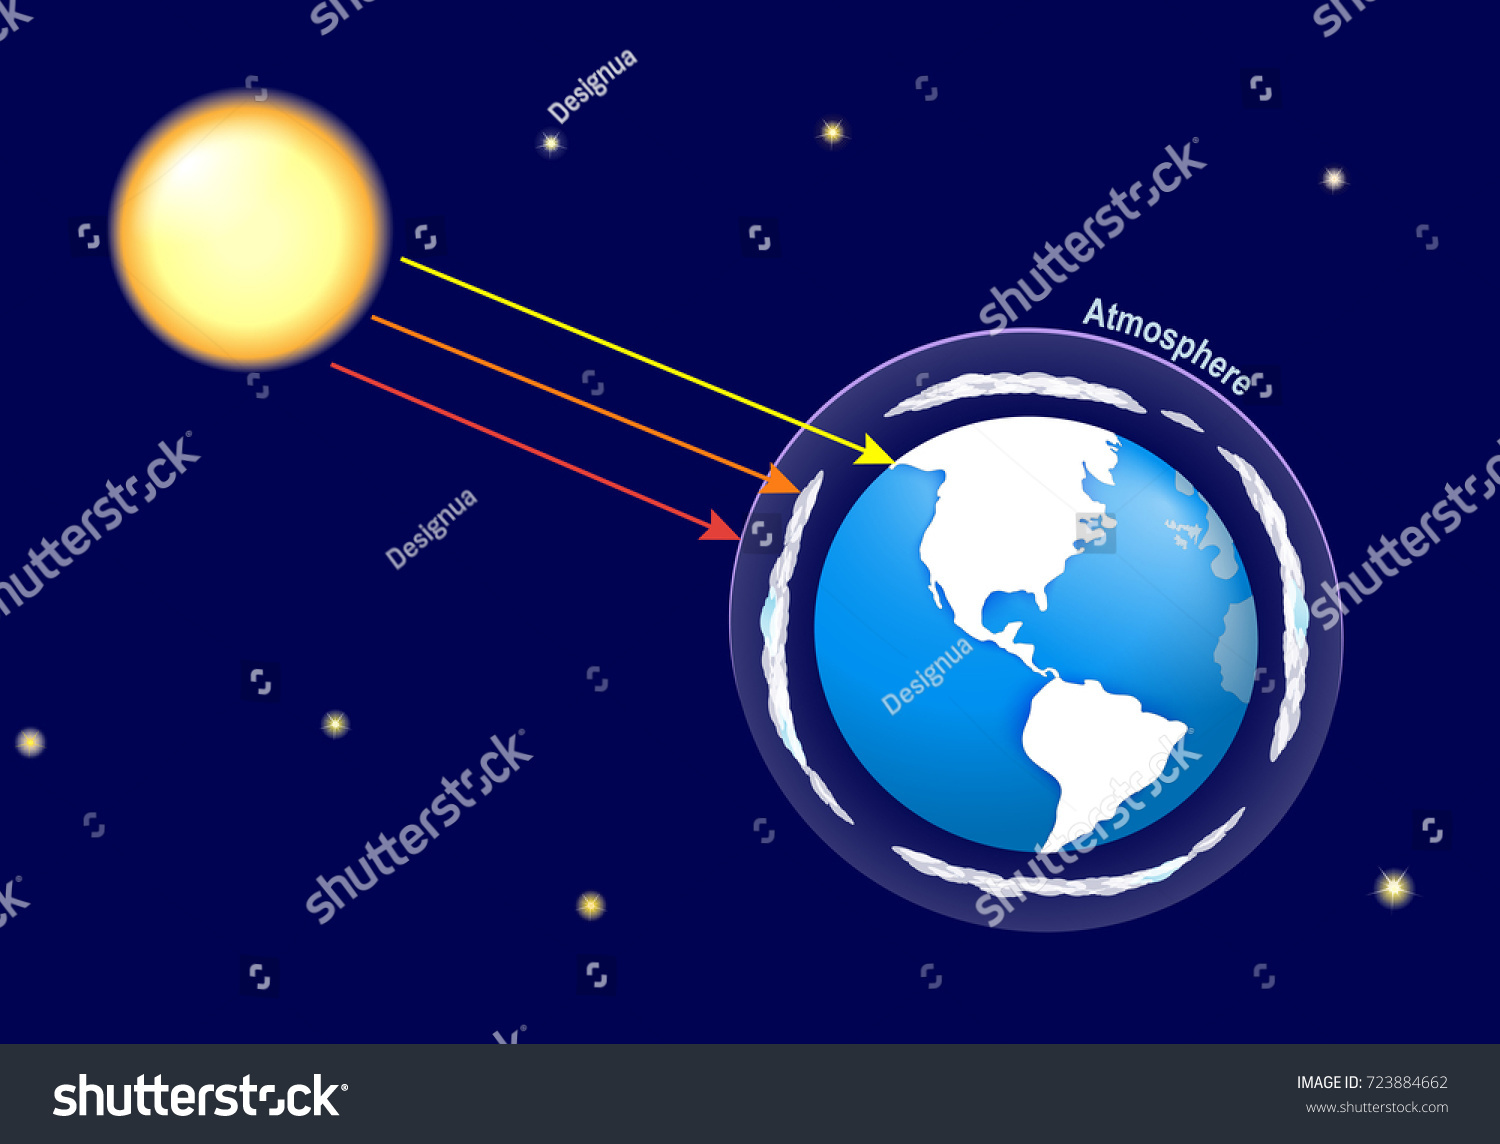 Natural greenhouse effect human enhanced greenhouse stock natural greenhouse effect human enhanced greenhouse stock illustration 723884662 shutterstock ccuart Images